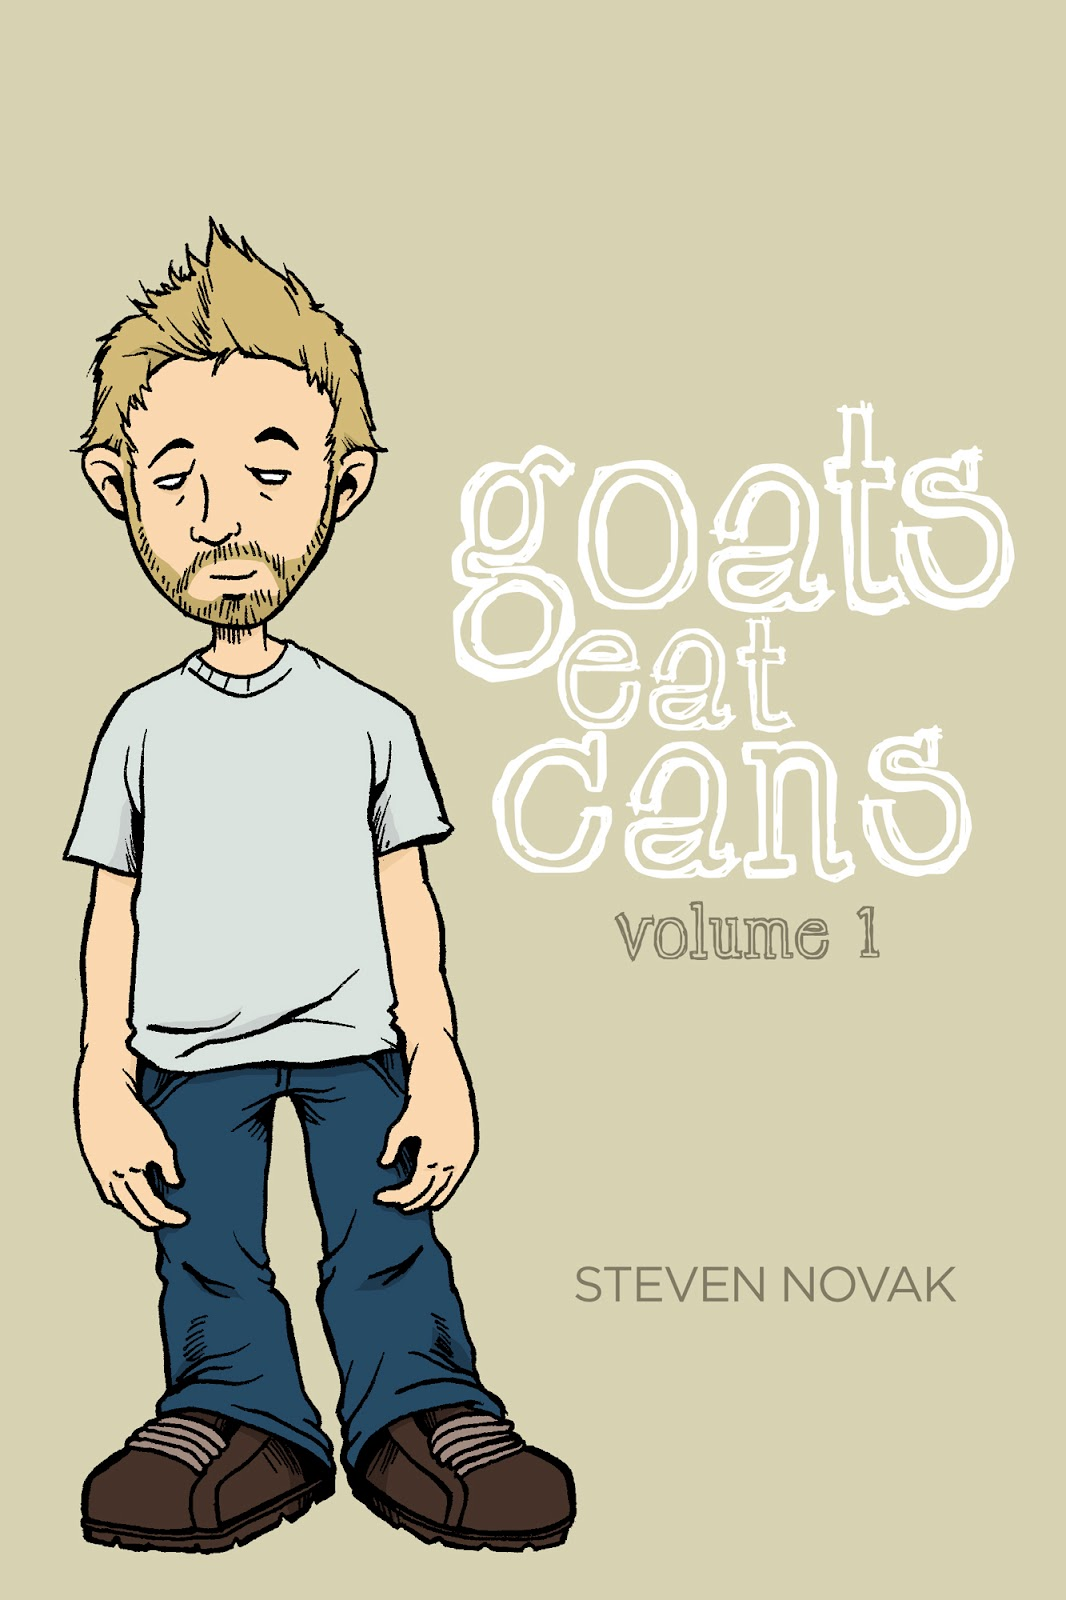 Interview with humorist author and illustrator Steven Novak